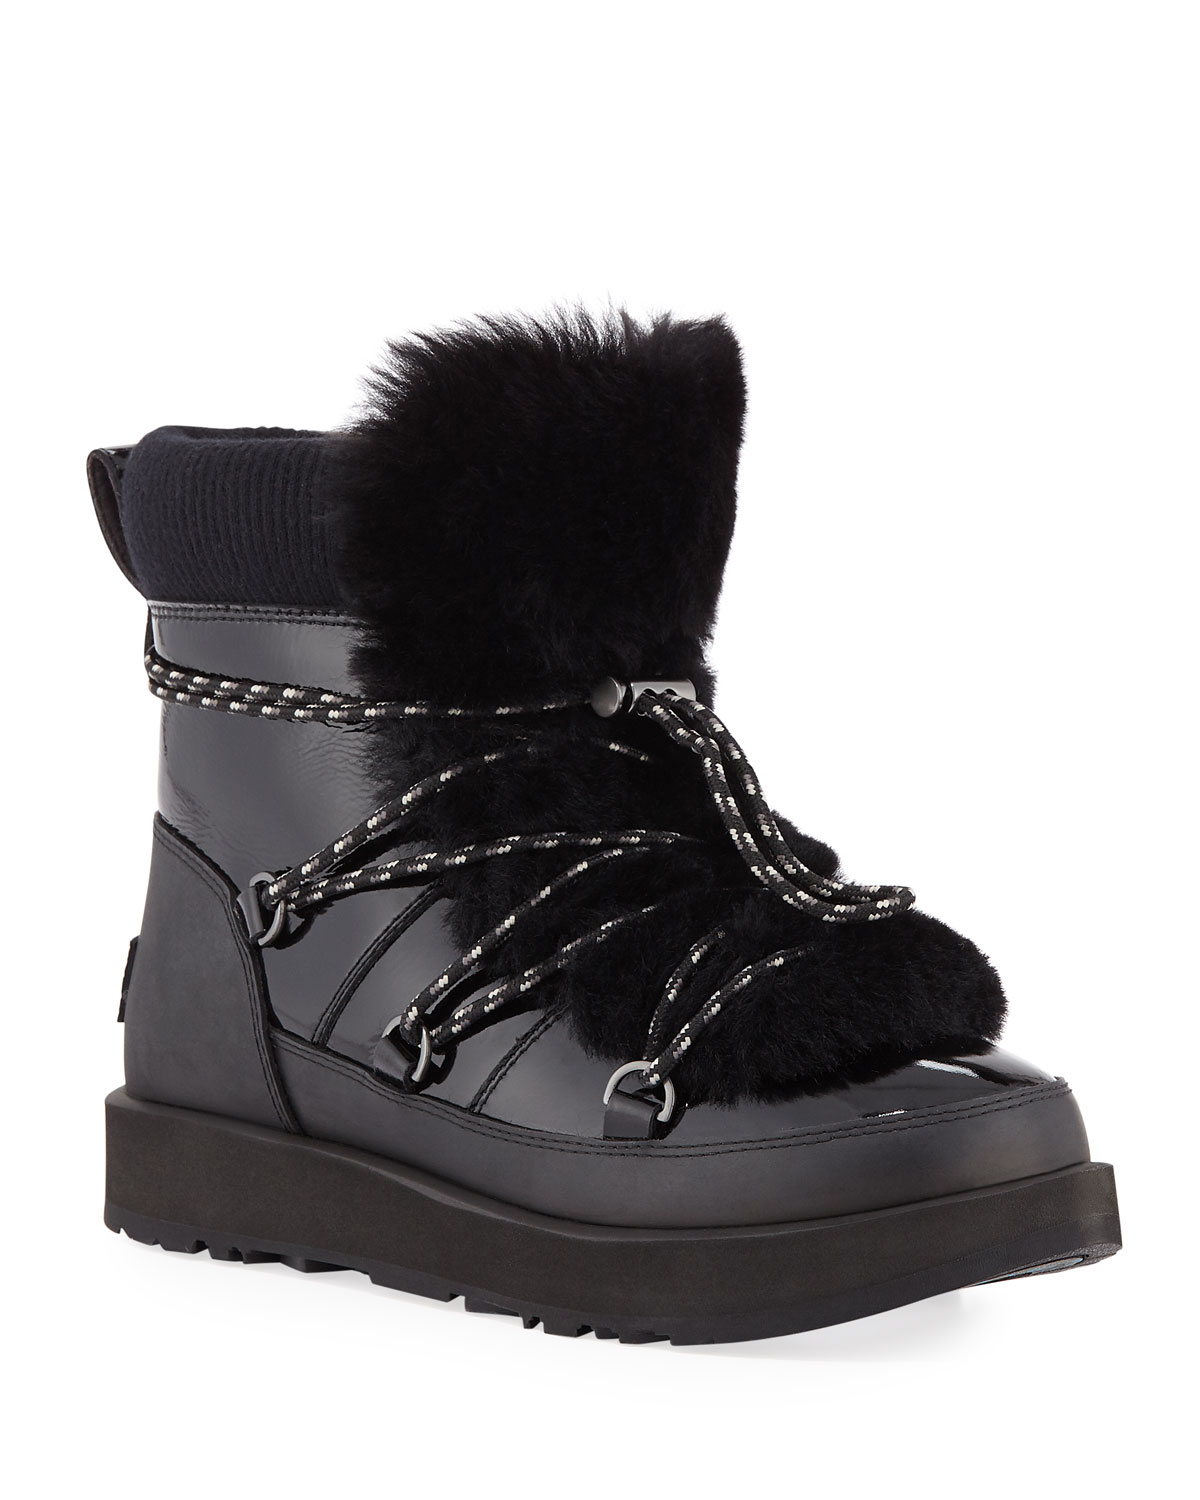 Buy Ugg lace waterproof up boots photo picture trends